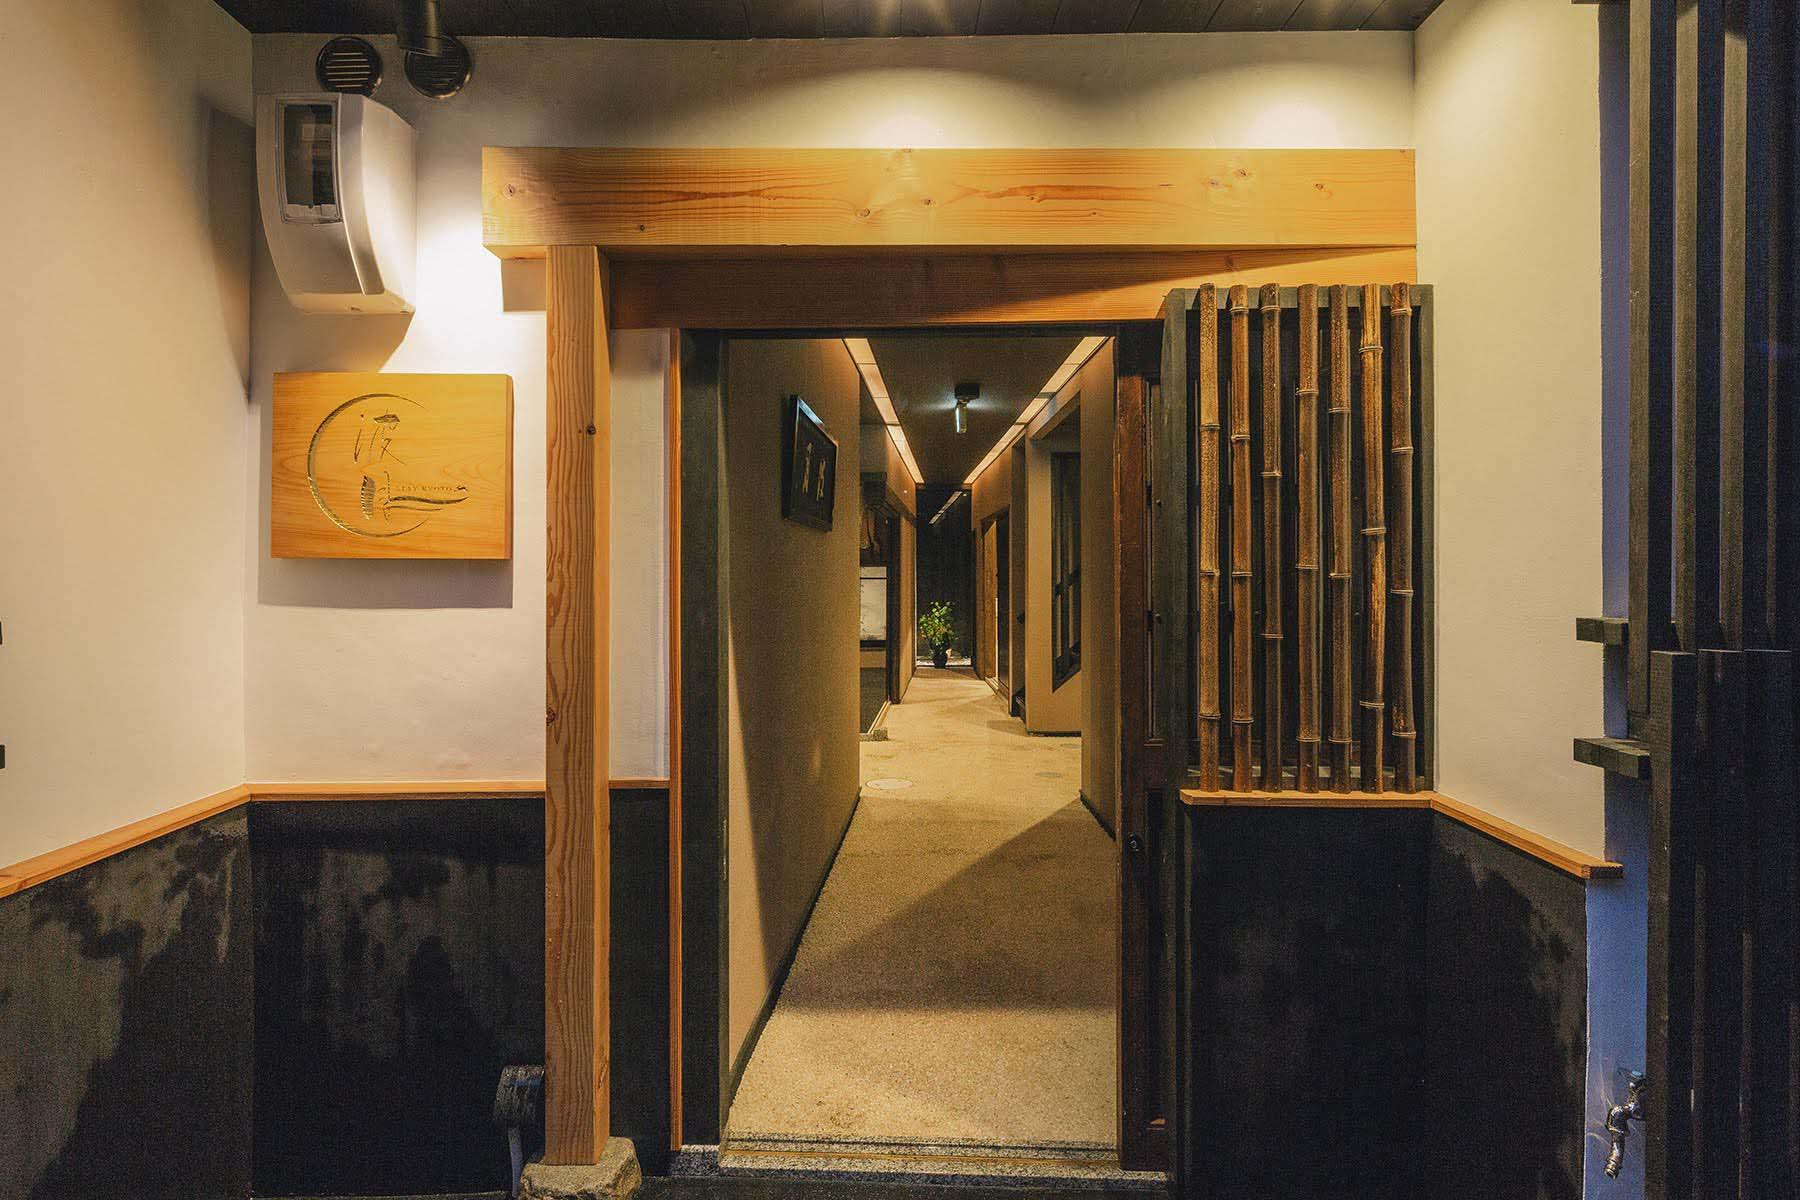 Discover Kyoto - Complete your Kyoto plans by booking a one-of-a-kind stay at Hazuki Kyoto.